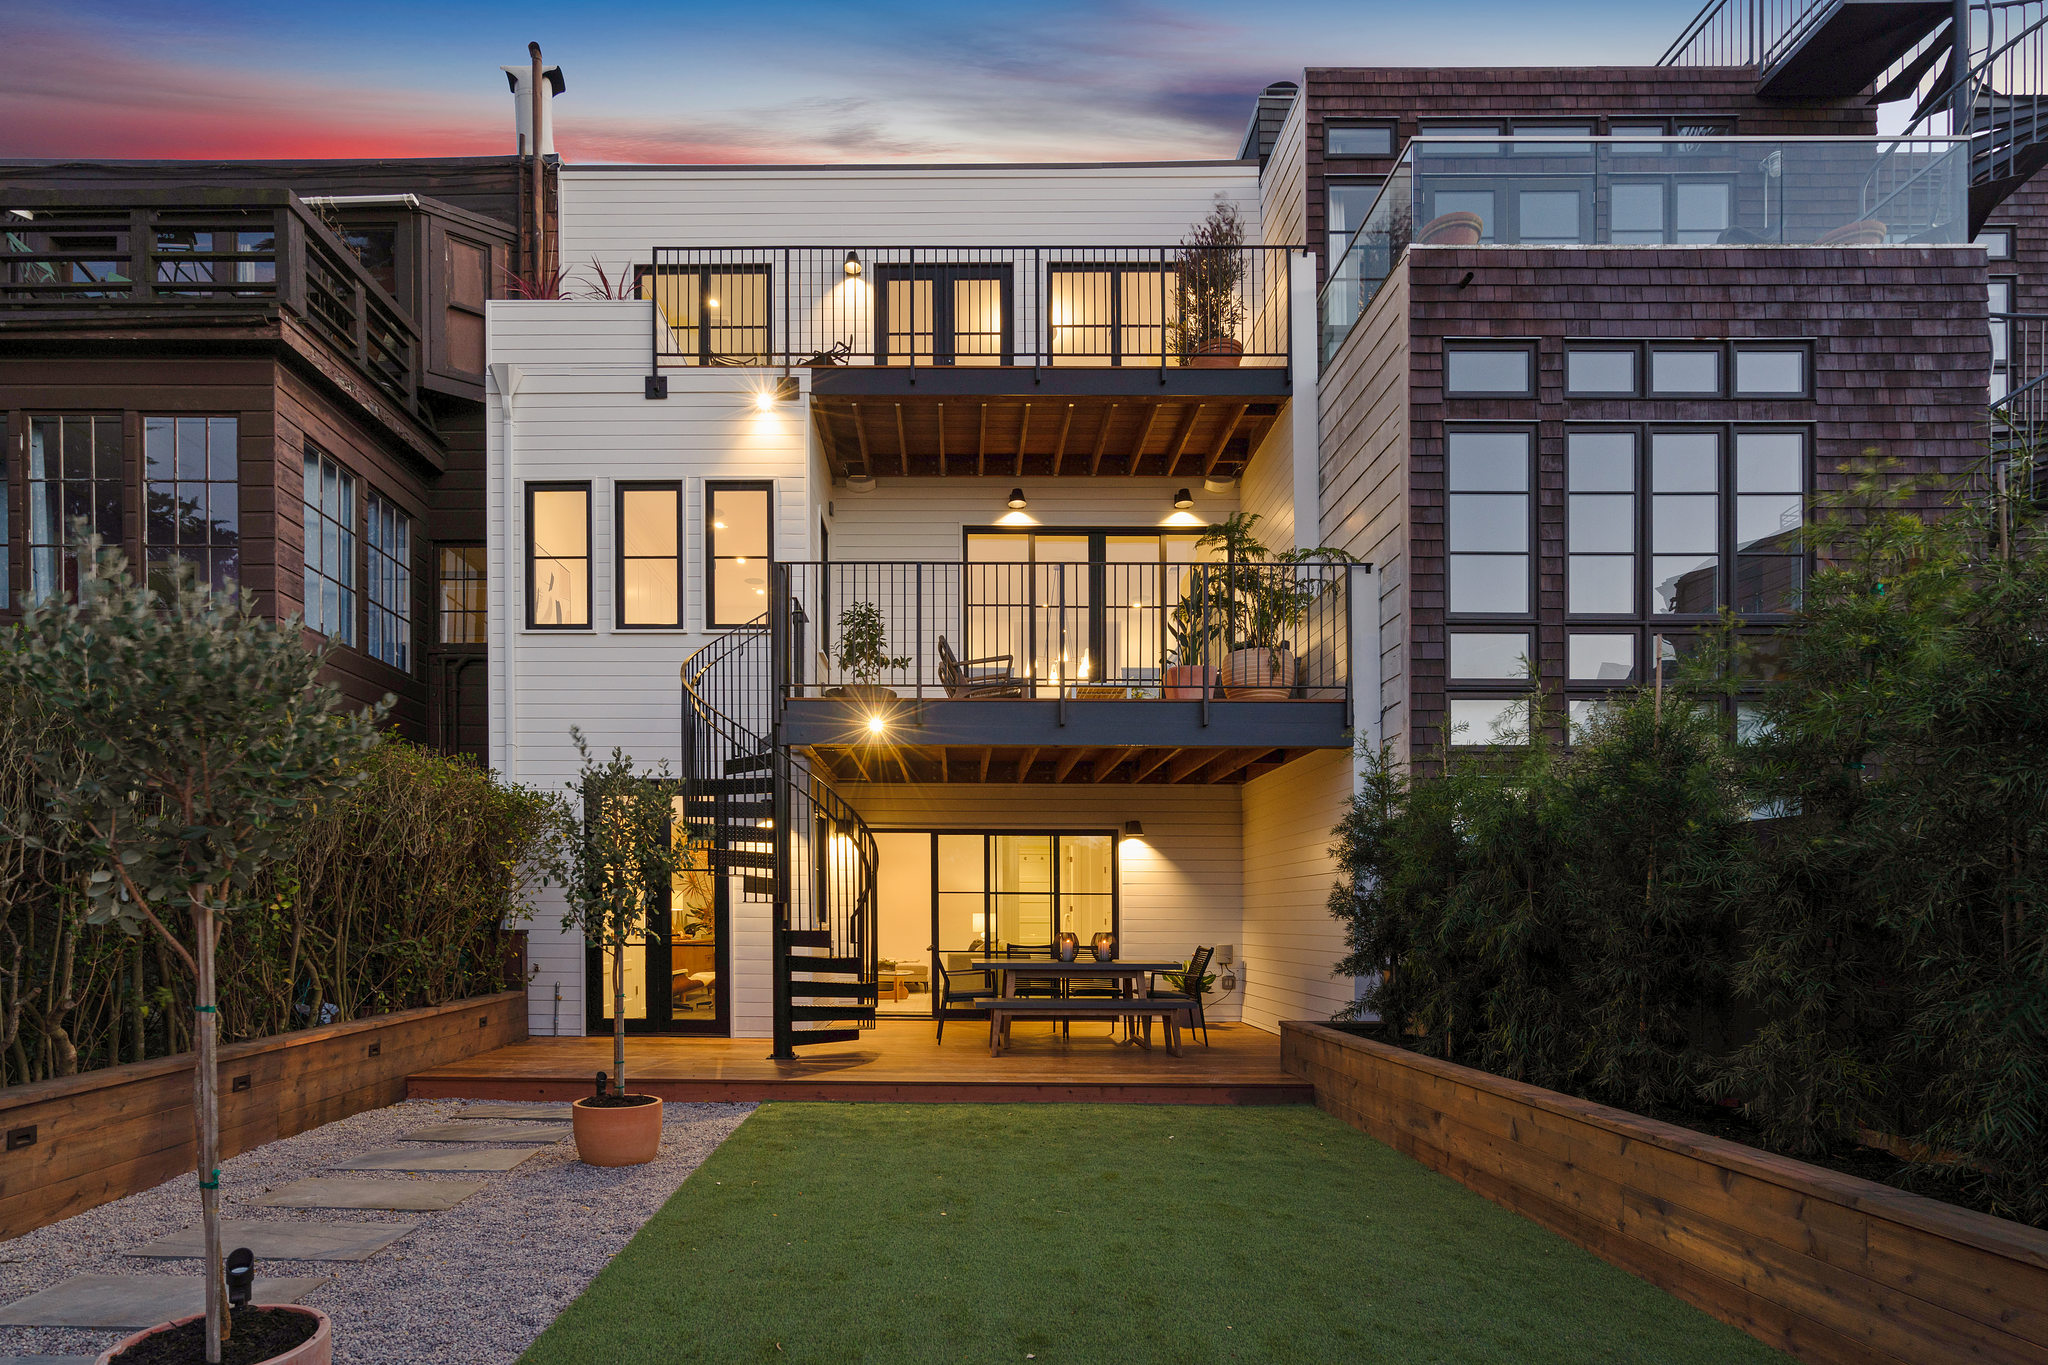 580HillSt.com  Dolores Heights $4.4M